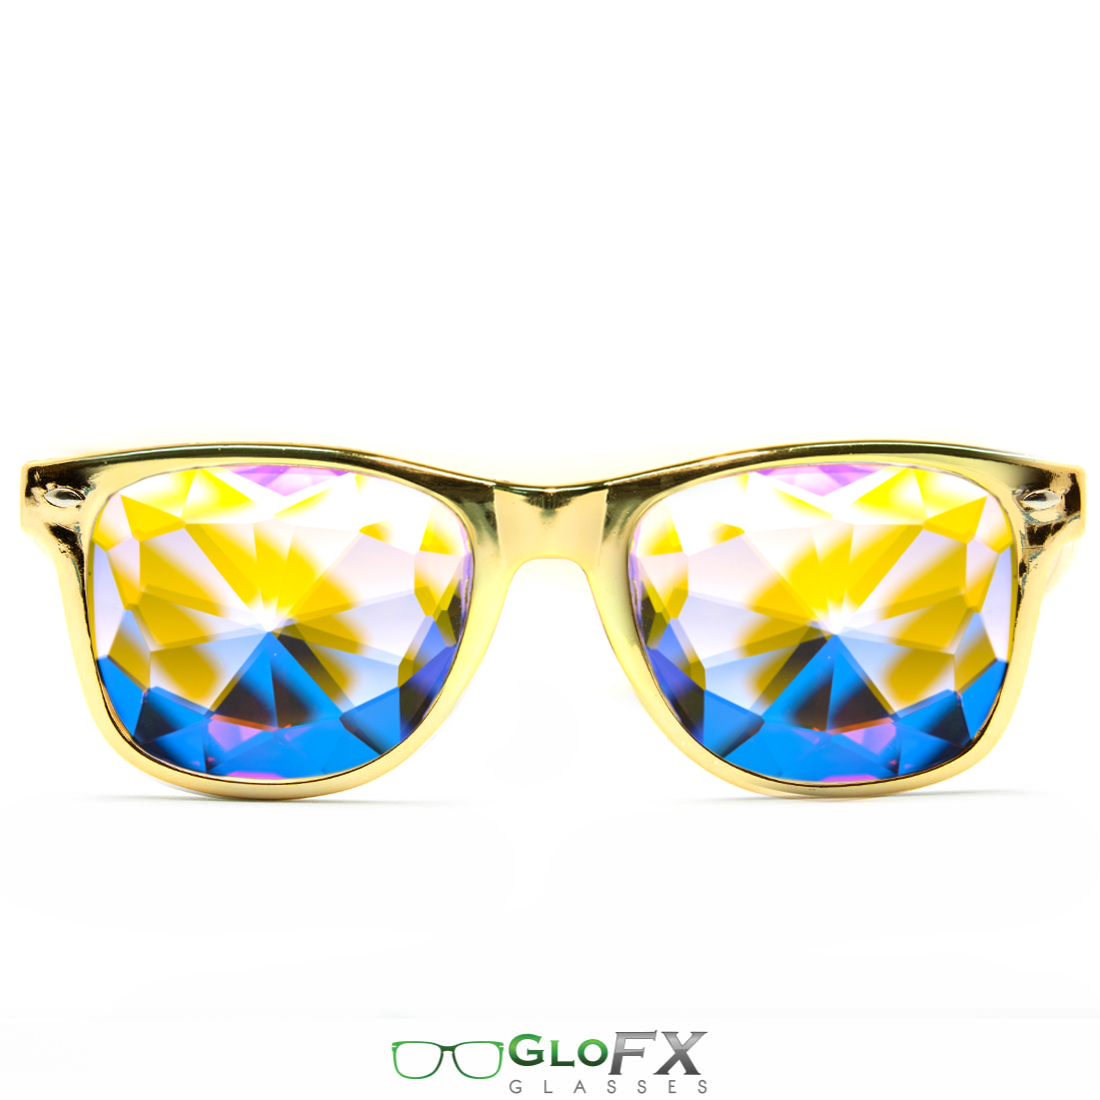 GloFX-All-Gold-Ultimate-Kaleidoscope-Glasses